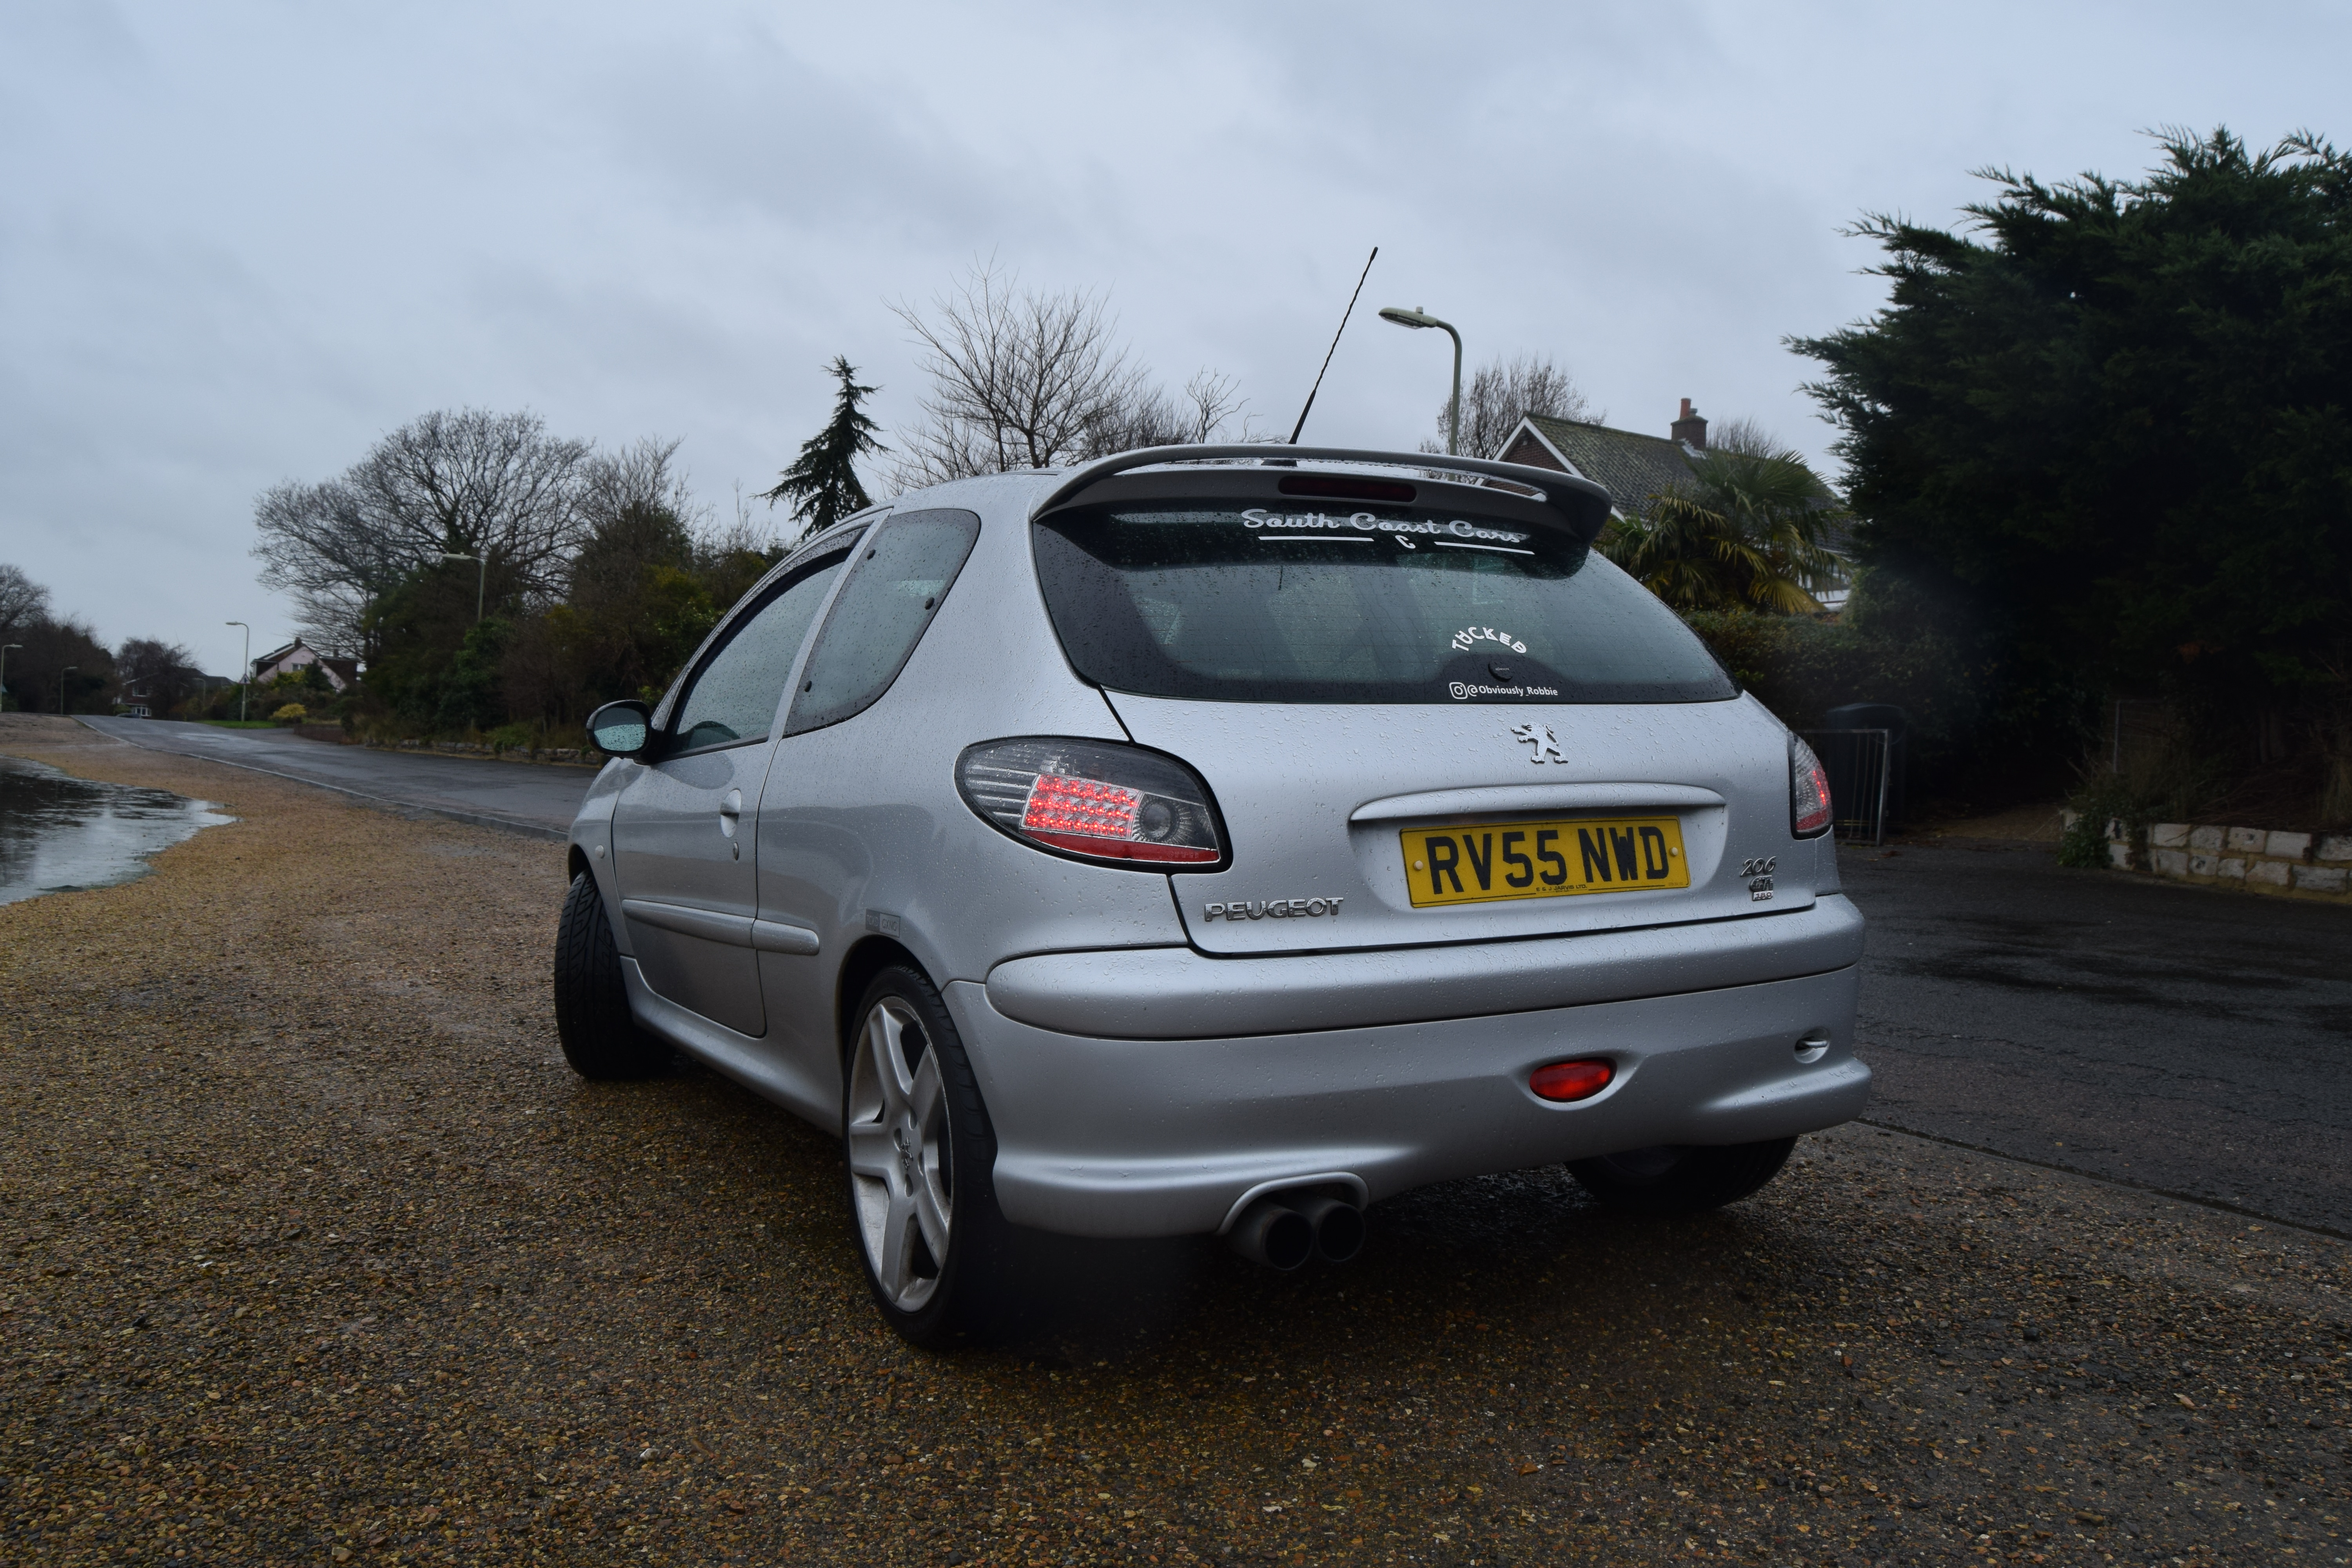 Robbie Murrell, Peugeot 206, Peugeot 206 GTi, Peugeot 206 GTi180, GTi180, Peugeot 206, Peugeot GTi, hot hatch, your cars, bargain car, cheap car, fun car, car sales, test drive, car review, motoring, automotive, ebay, ebay motors, autotrader, car, cars, French car